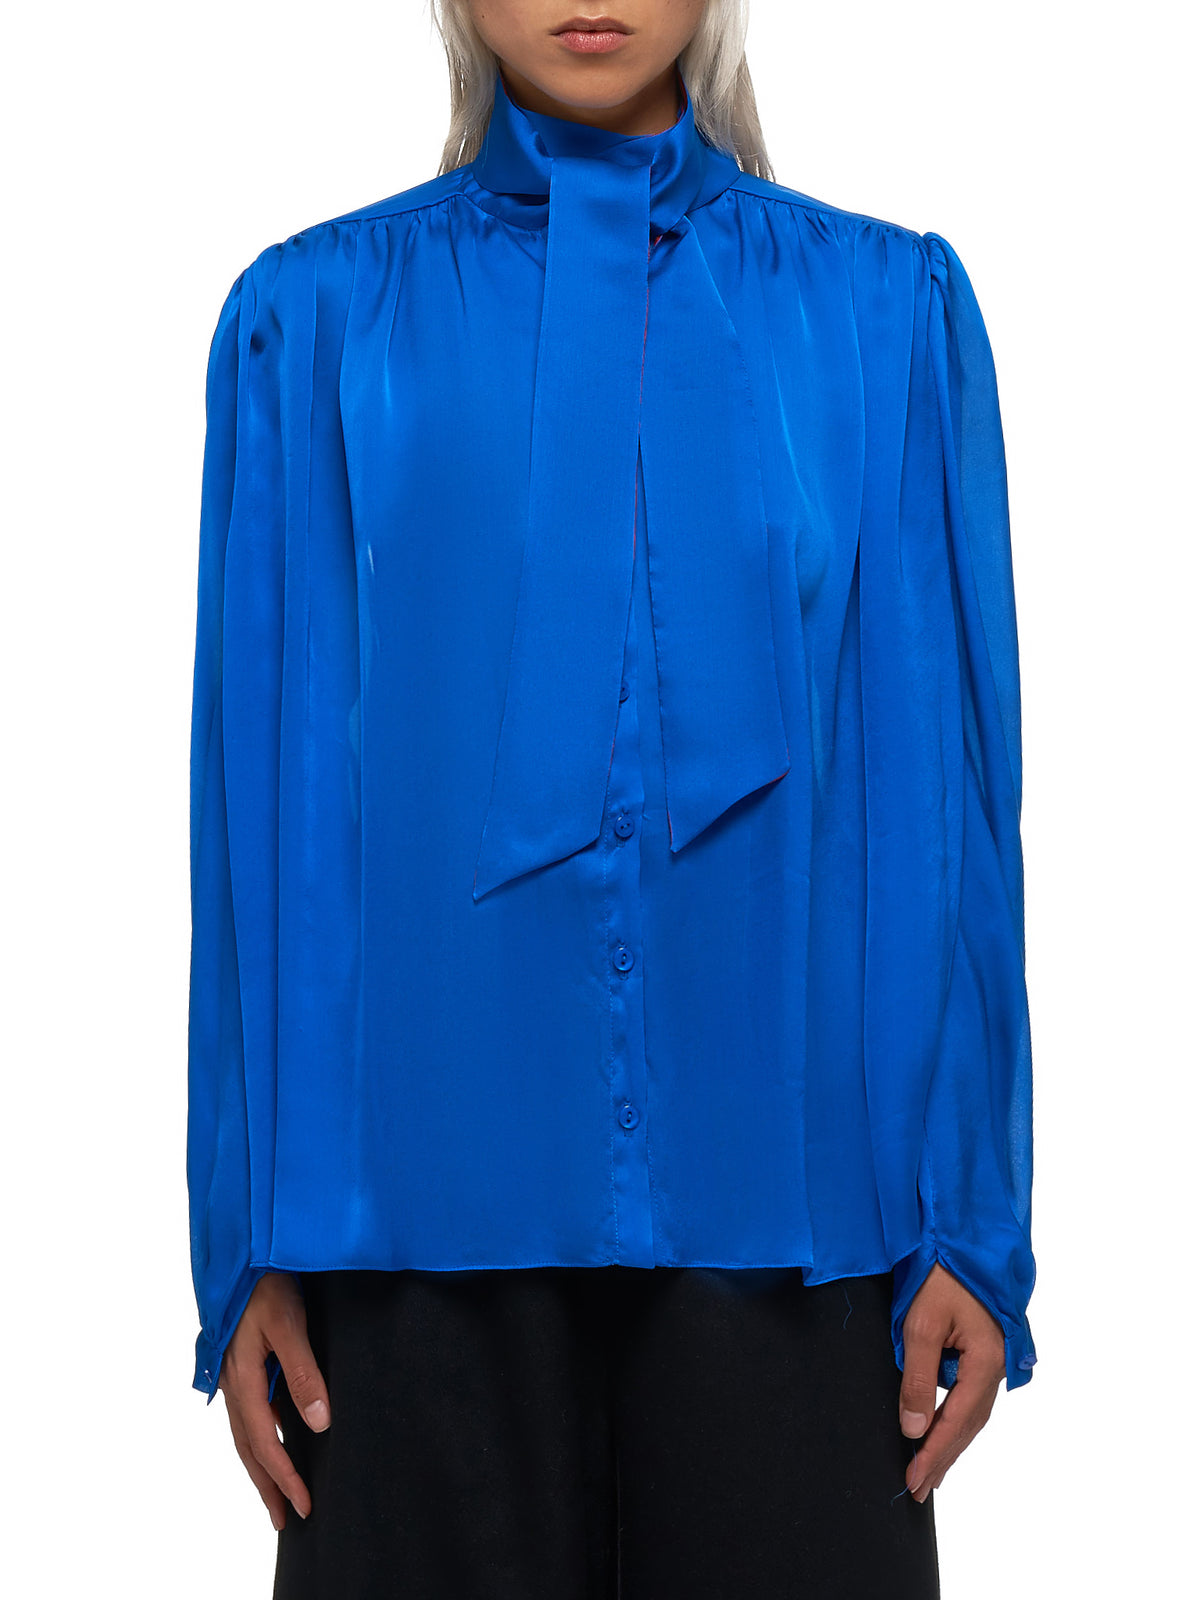 Nicolas Lecourt Mansion Blouse - Hlorenzo Front